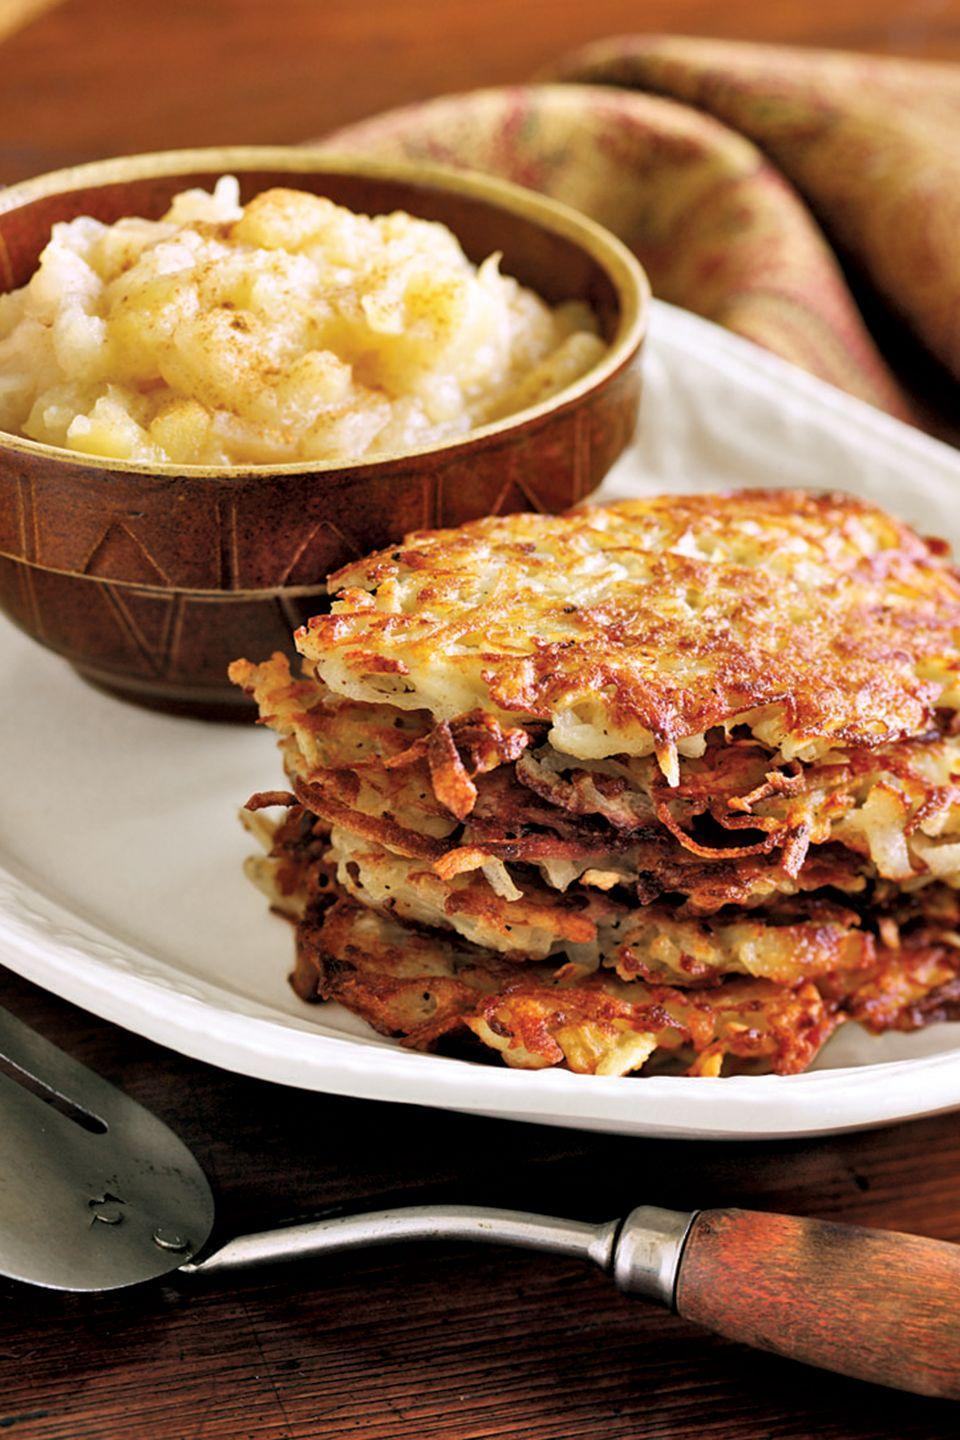 """<p>Golden fried potato pancakes receive a boost from freshly grated nutmeg.</p><p><strong><a href=""""https://www.countryliving.com/food-drinks/recipes/a855/potato-pancakes-nutmeg-42/"""" rel=""""nofollow noopener"""" target=""""_blank"""" data-ylk=""""slk:Get the recipe"""" class=""""link rapid-noclick-resp"""">Get the recipe</a>.</strong></p>"""